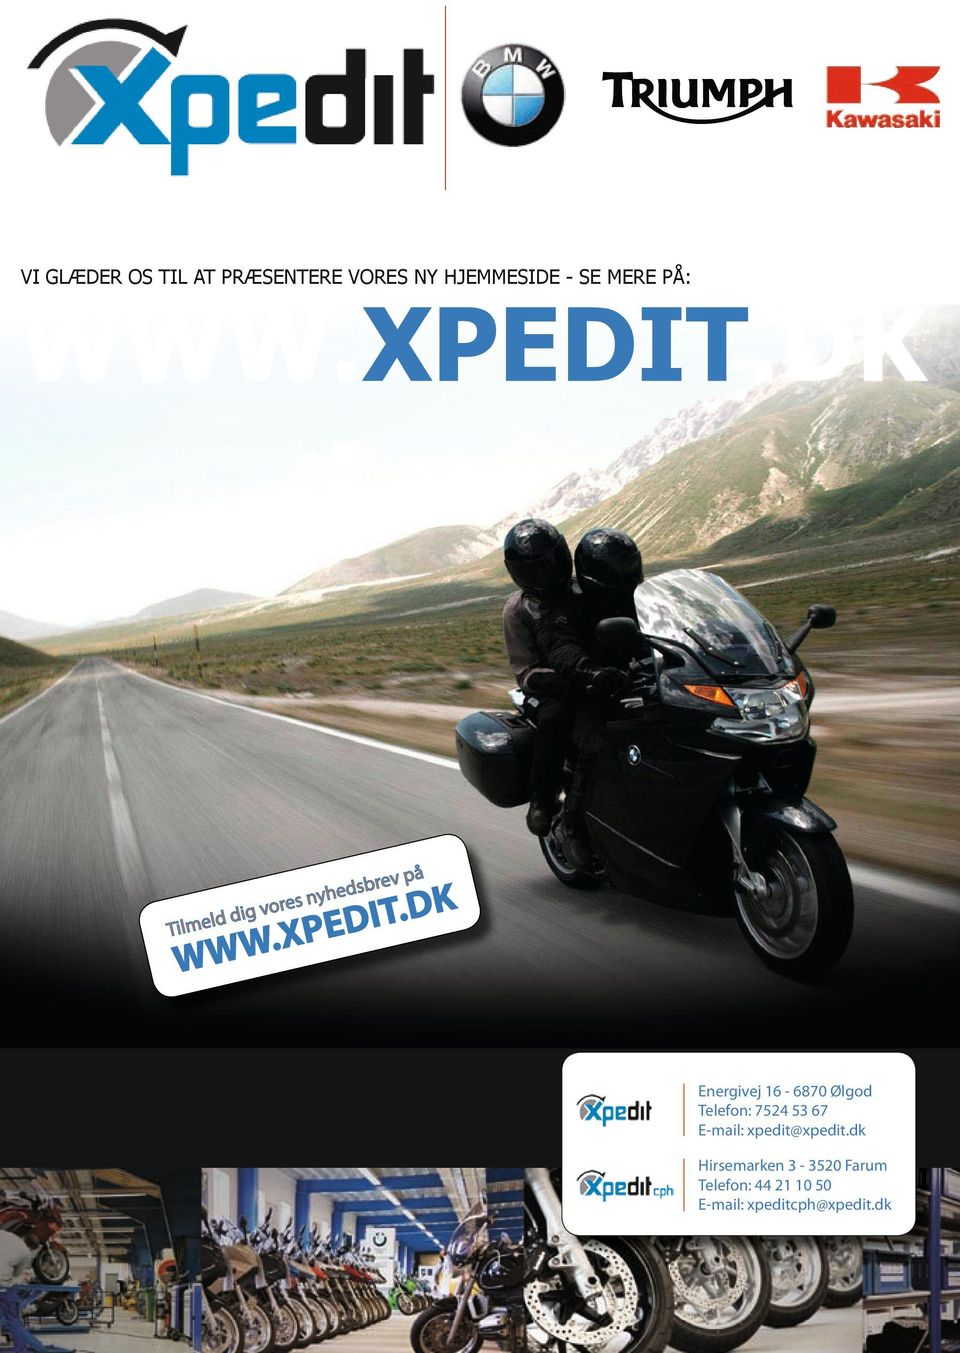 53 67 E-mail: xpedit@xpedit.